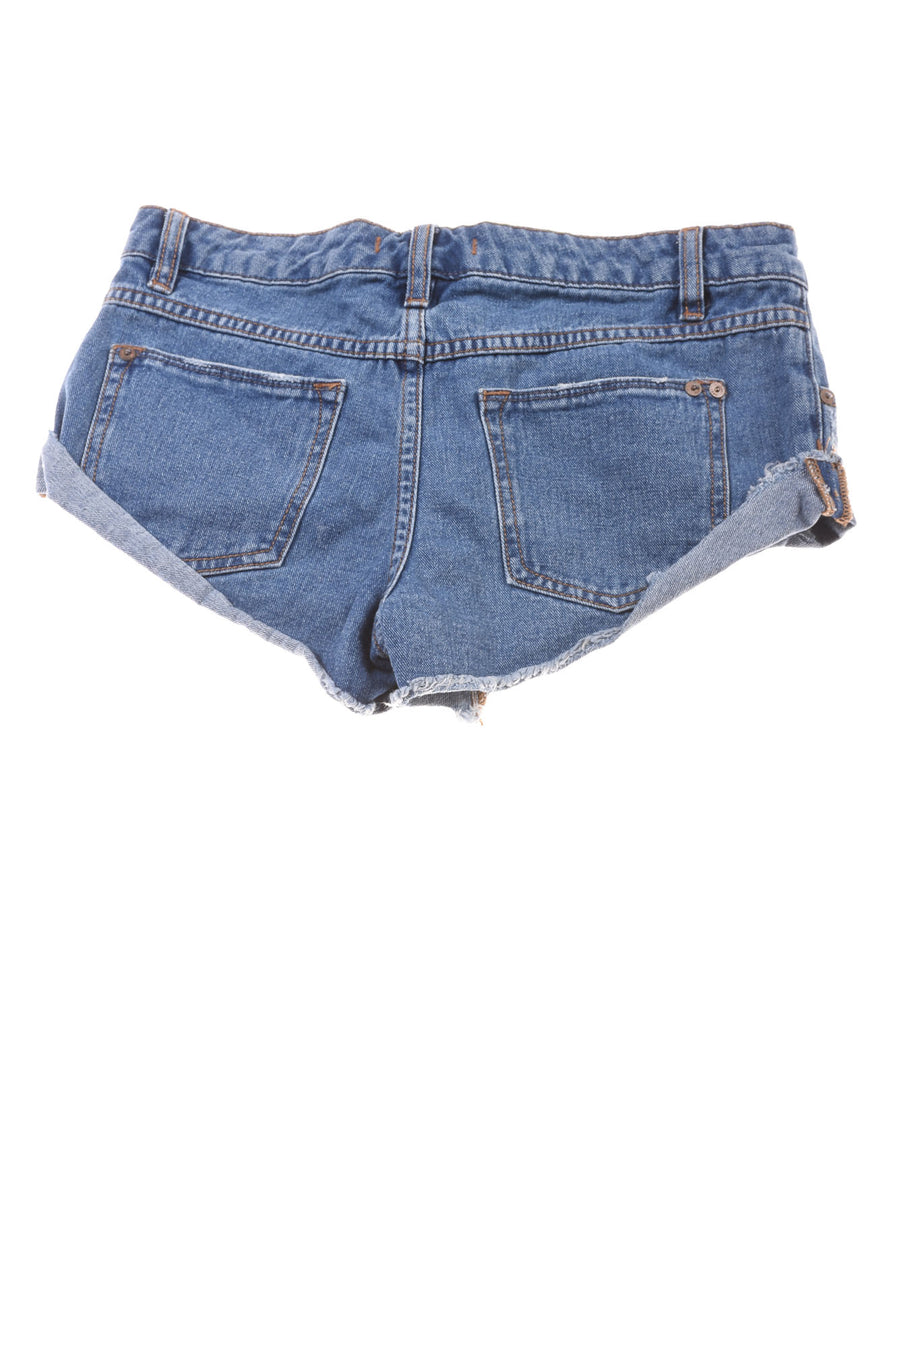 USED Free People Women's Shorts 24 Blue